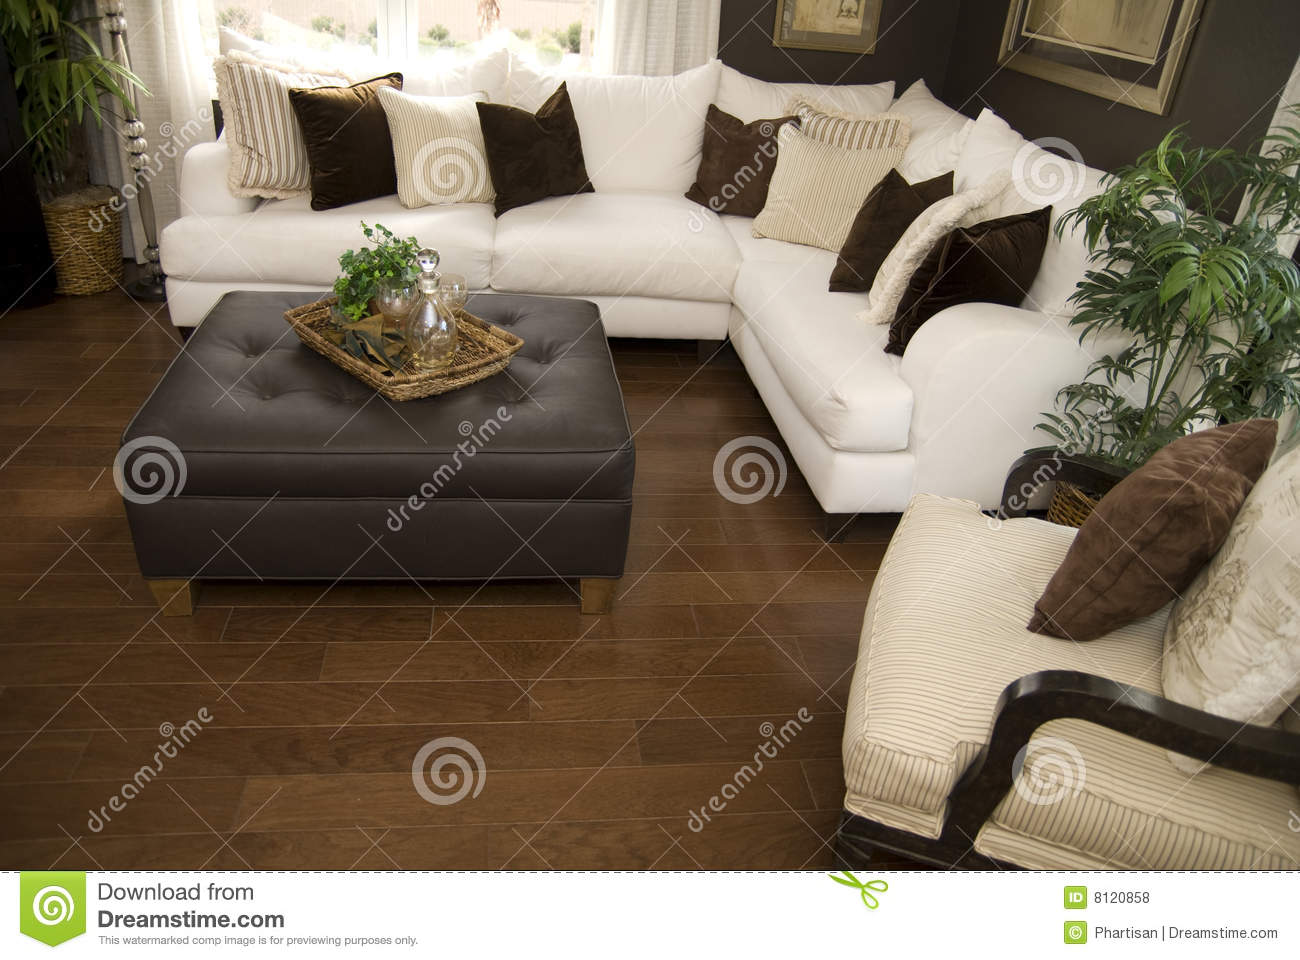 Hard Wood Flooring In Living Room Area Royalty Free Stock Photos ...